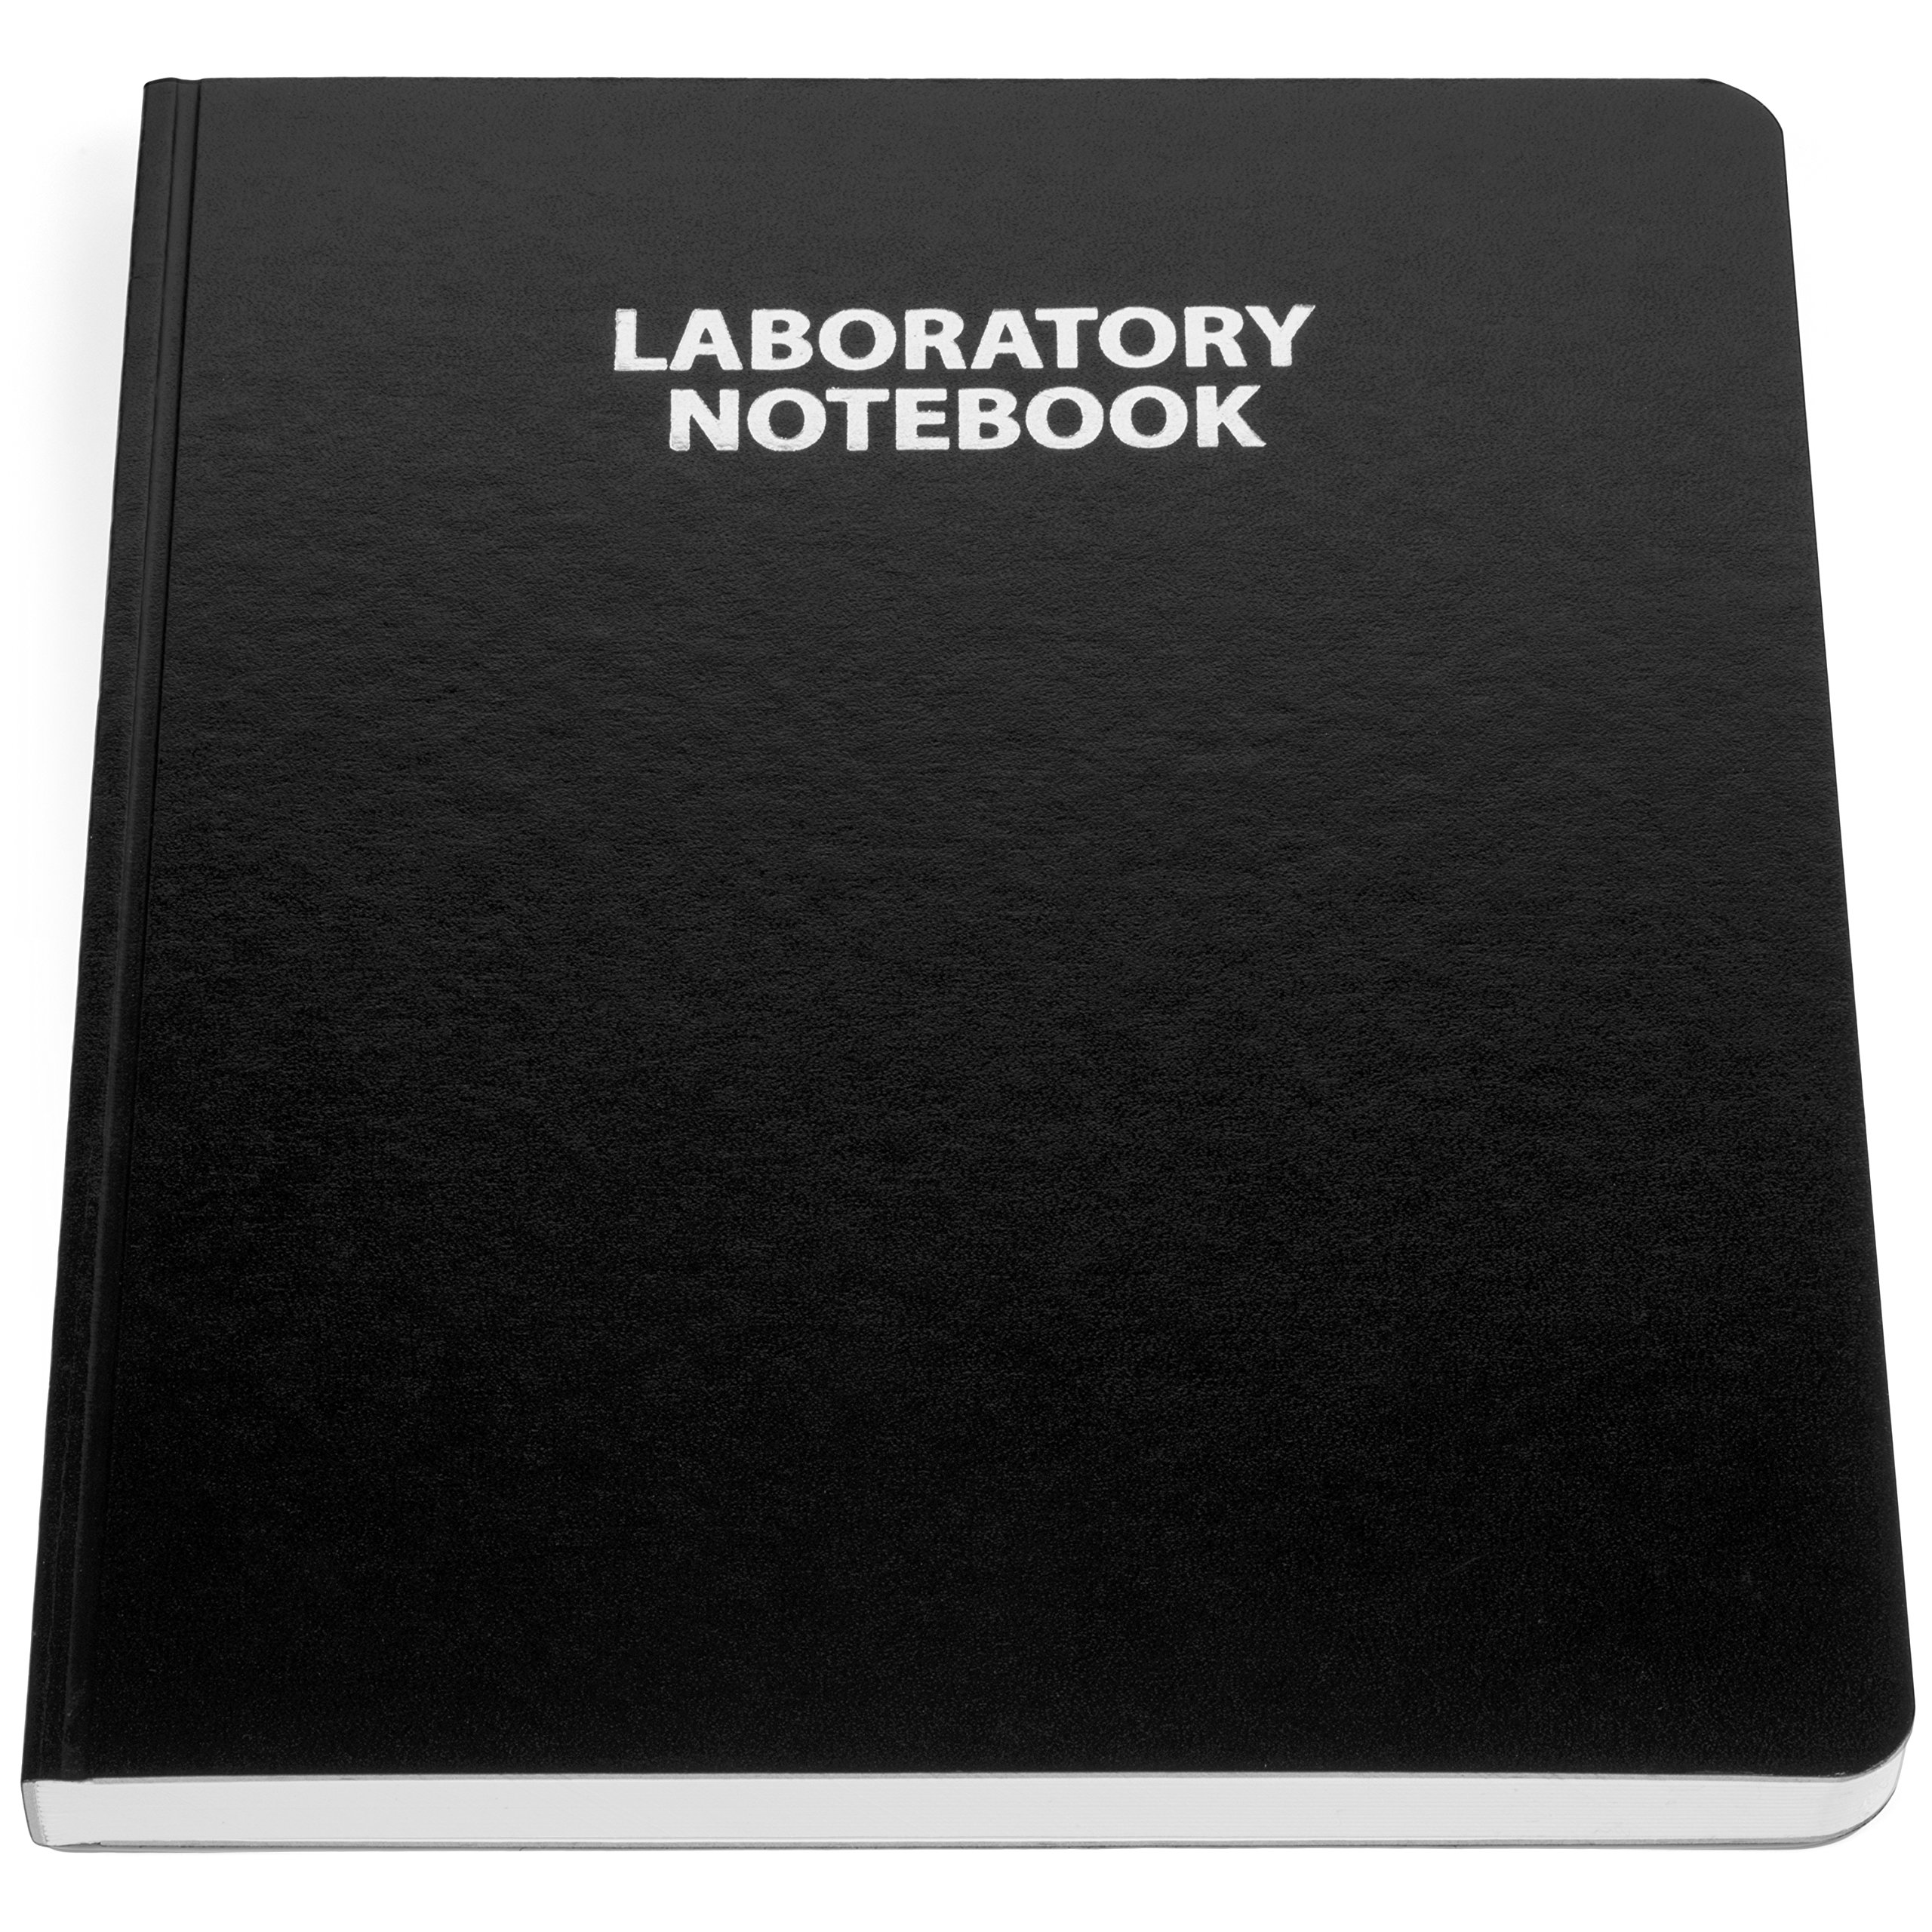 Scientific Notebook Company Flush Trimmed, Model #2001HZ Research Laboratory Notebook, 192 Pages, Smyth Sewn, 9.25 X 11.25, 1/4'' lined (Black Cover)